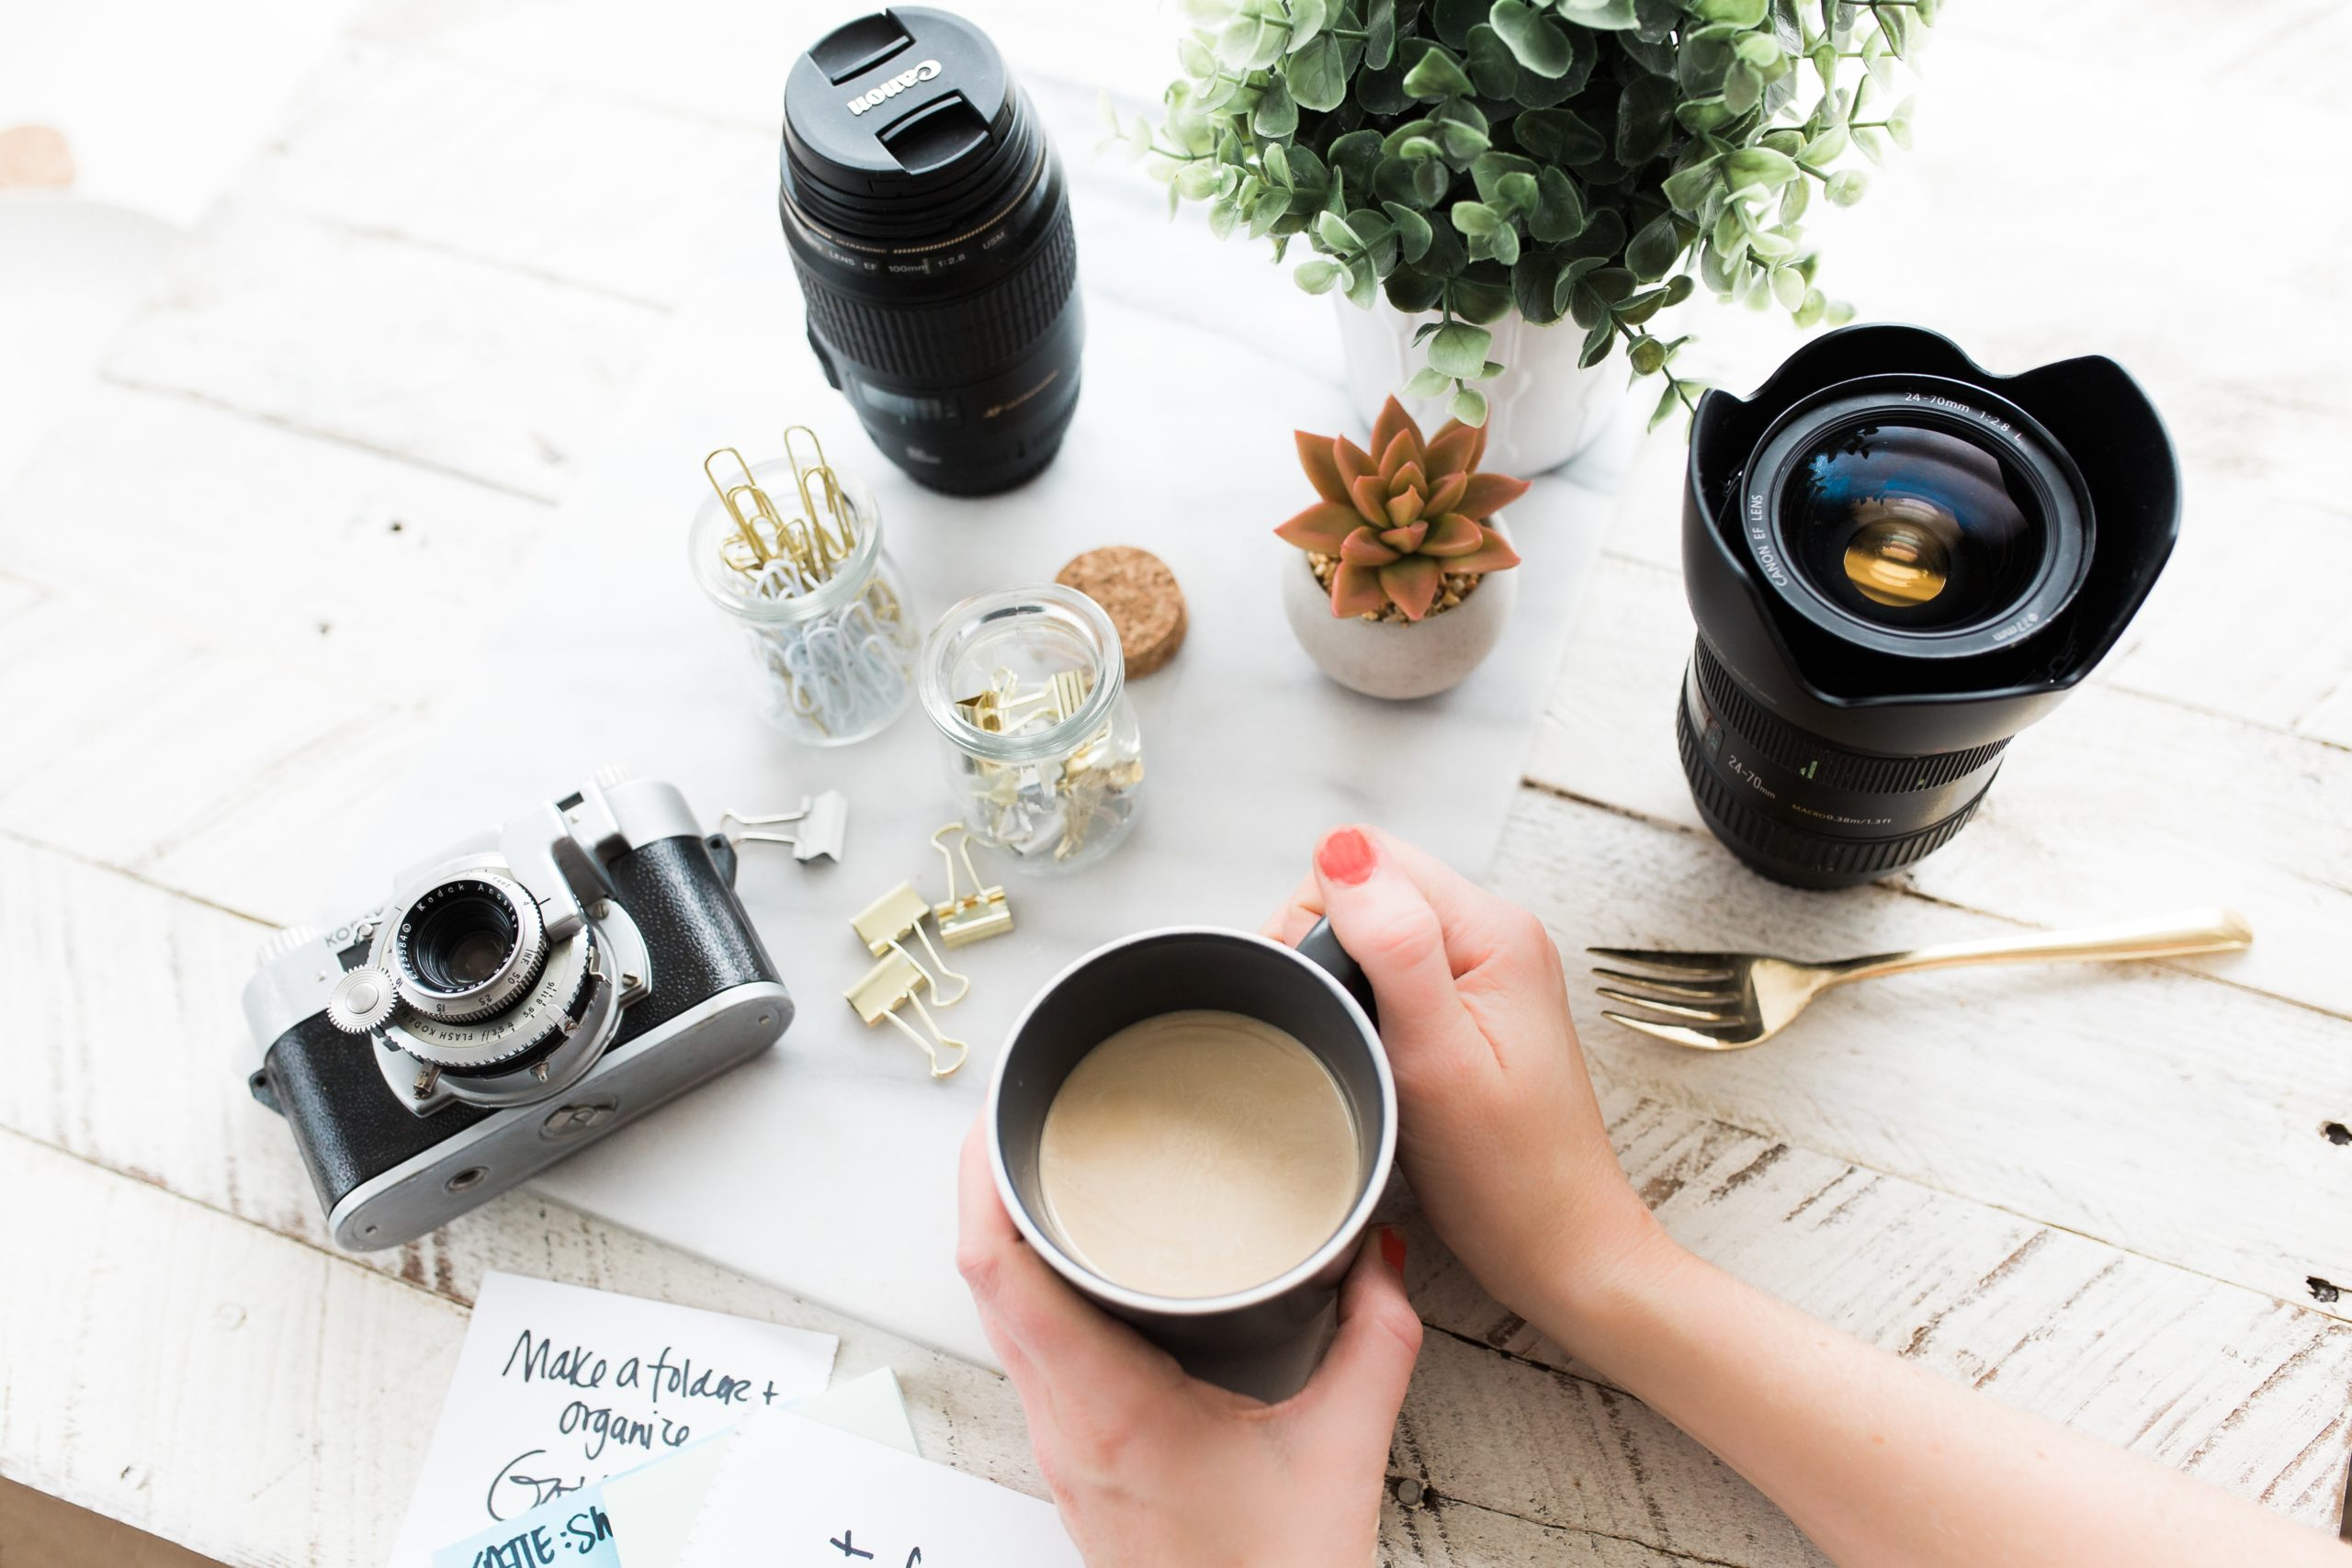 5 Tips to Transform your Amateur Photography from Hobby to Profession